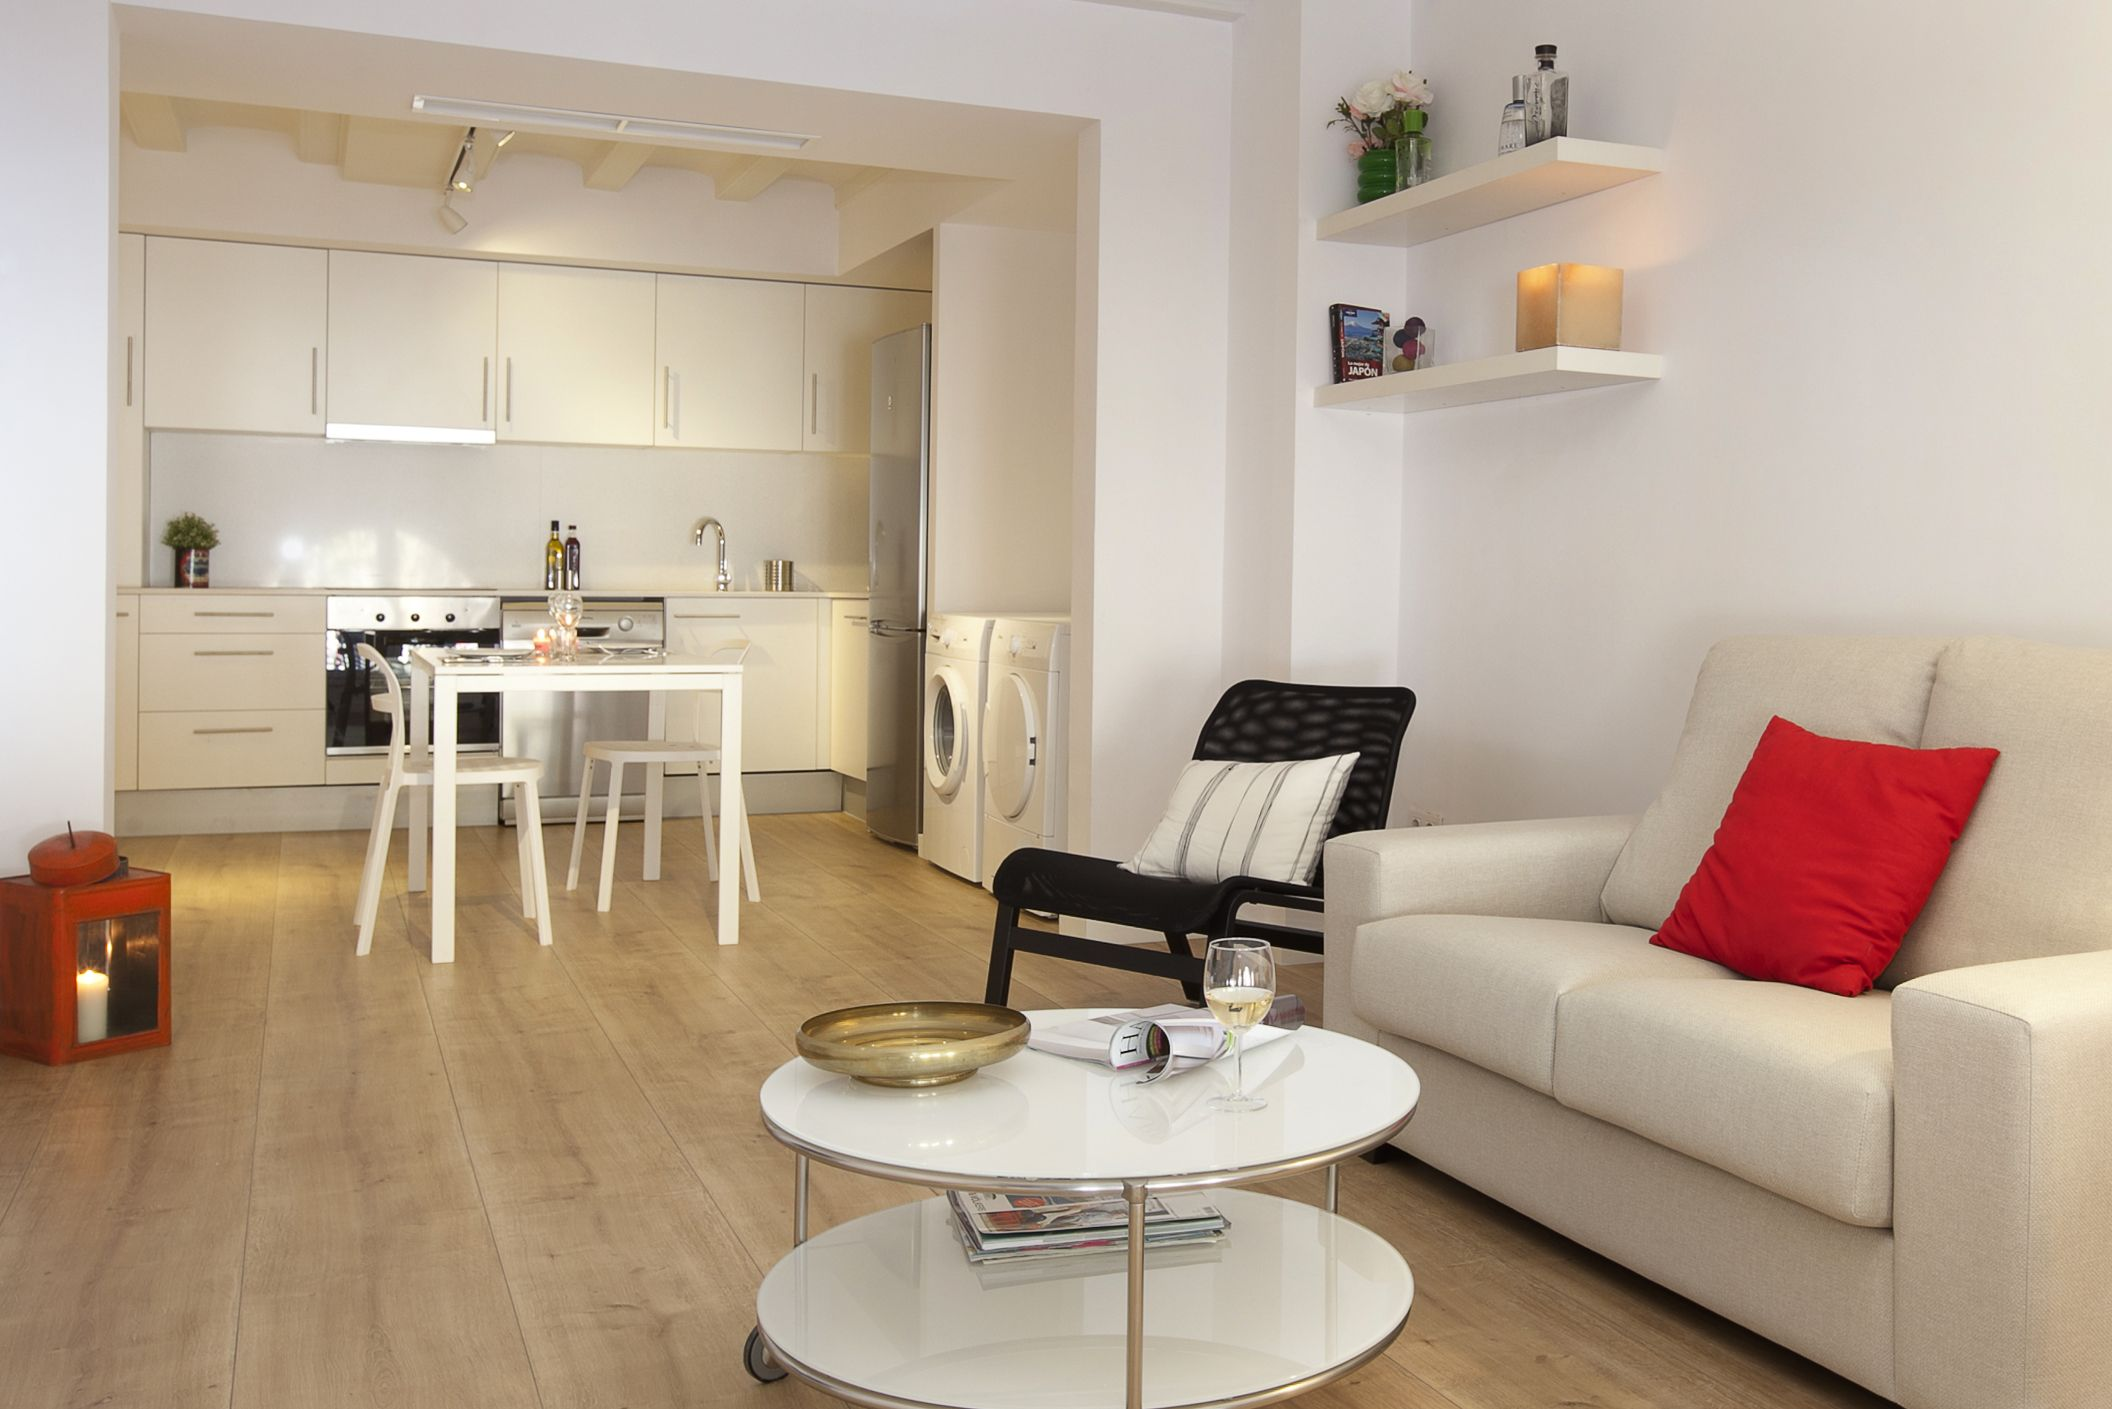 Besta Salle A Manger 10. salon comedor - living and dining room | 1840 apartments